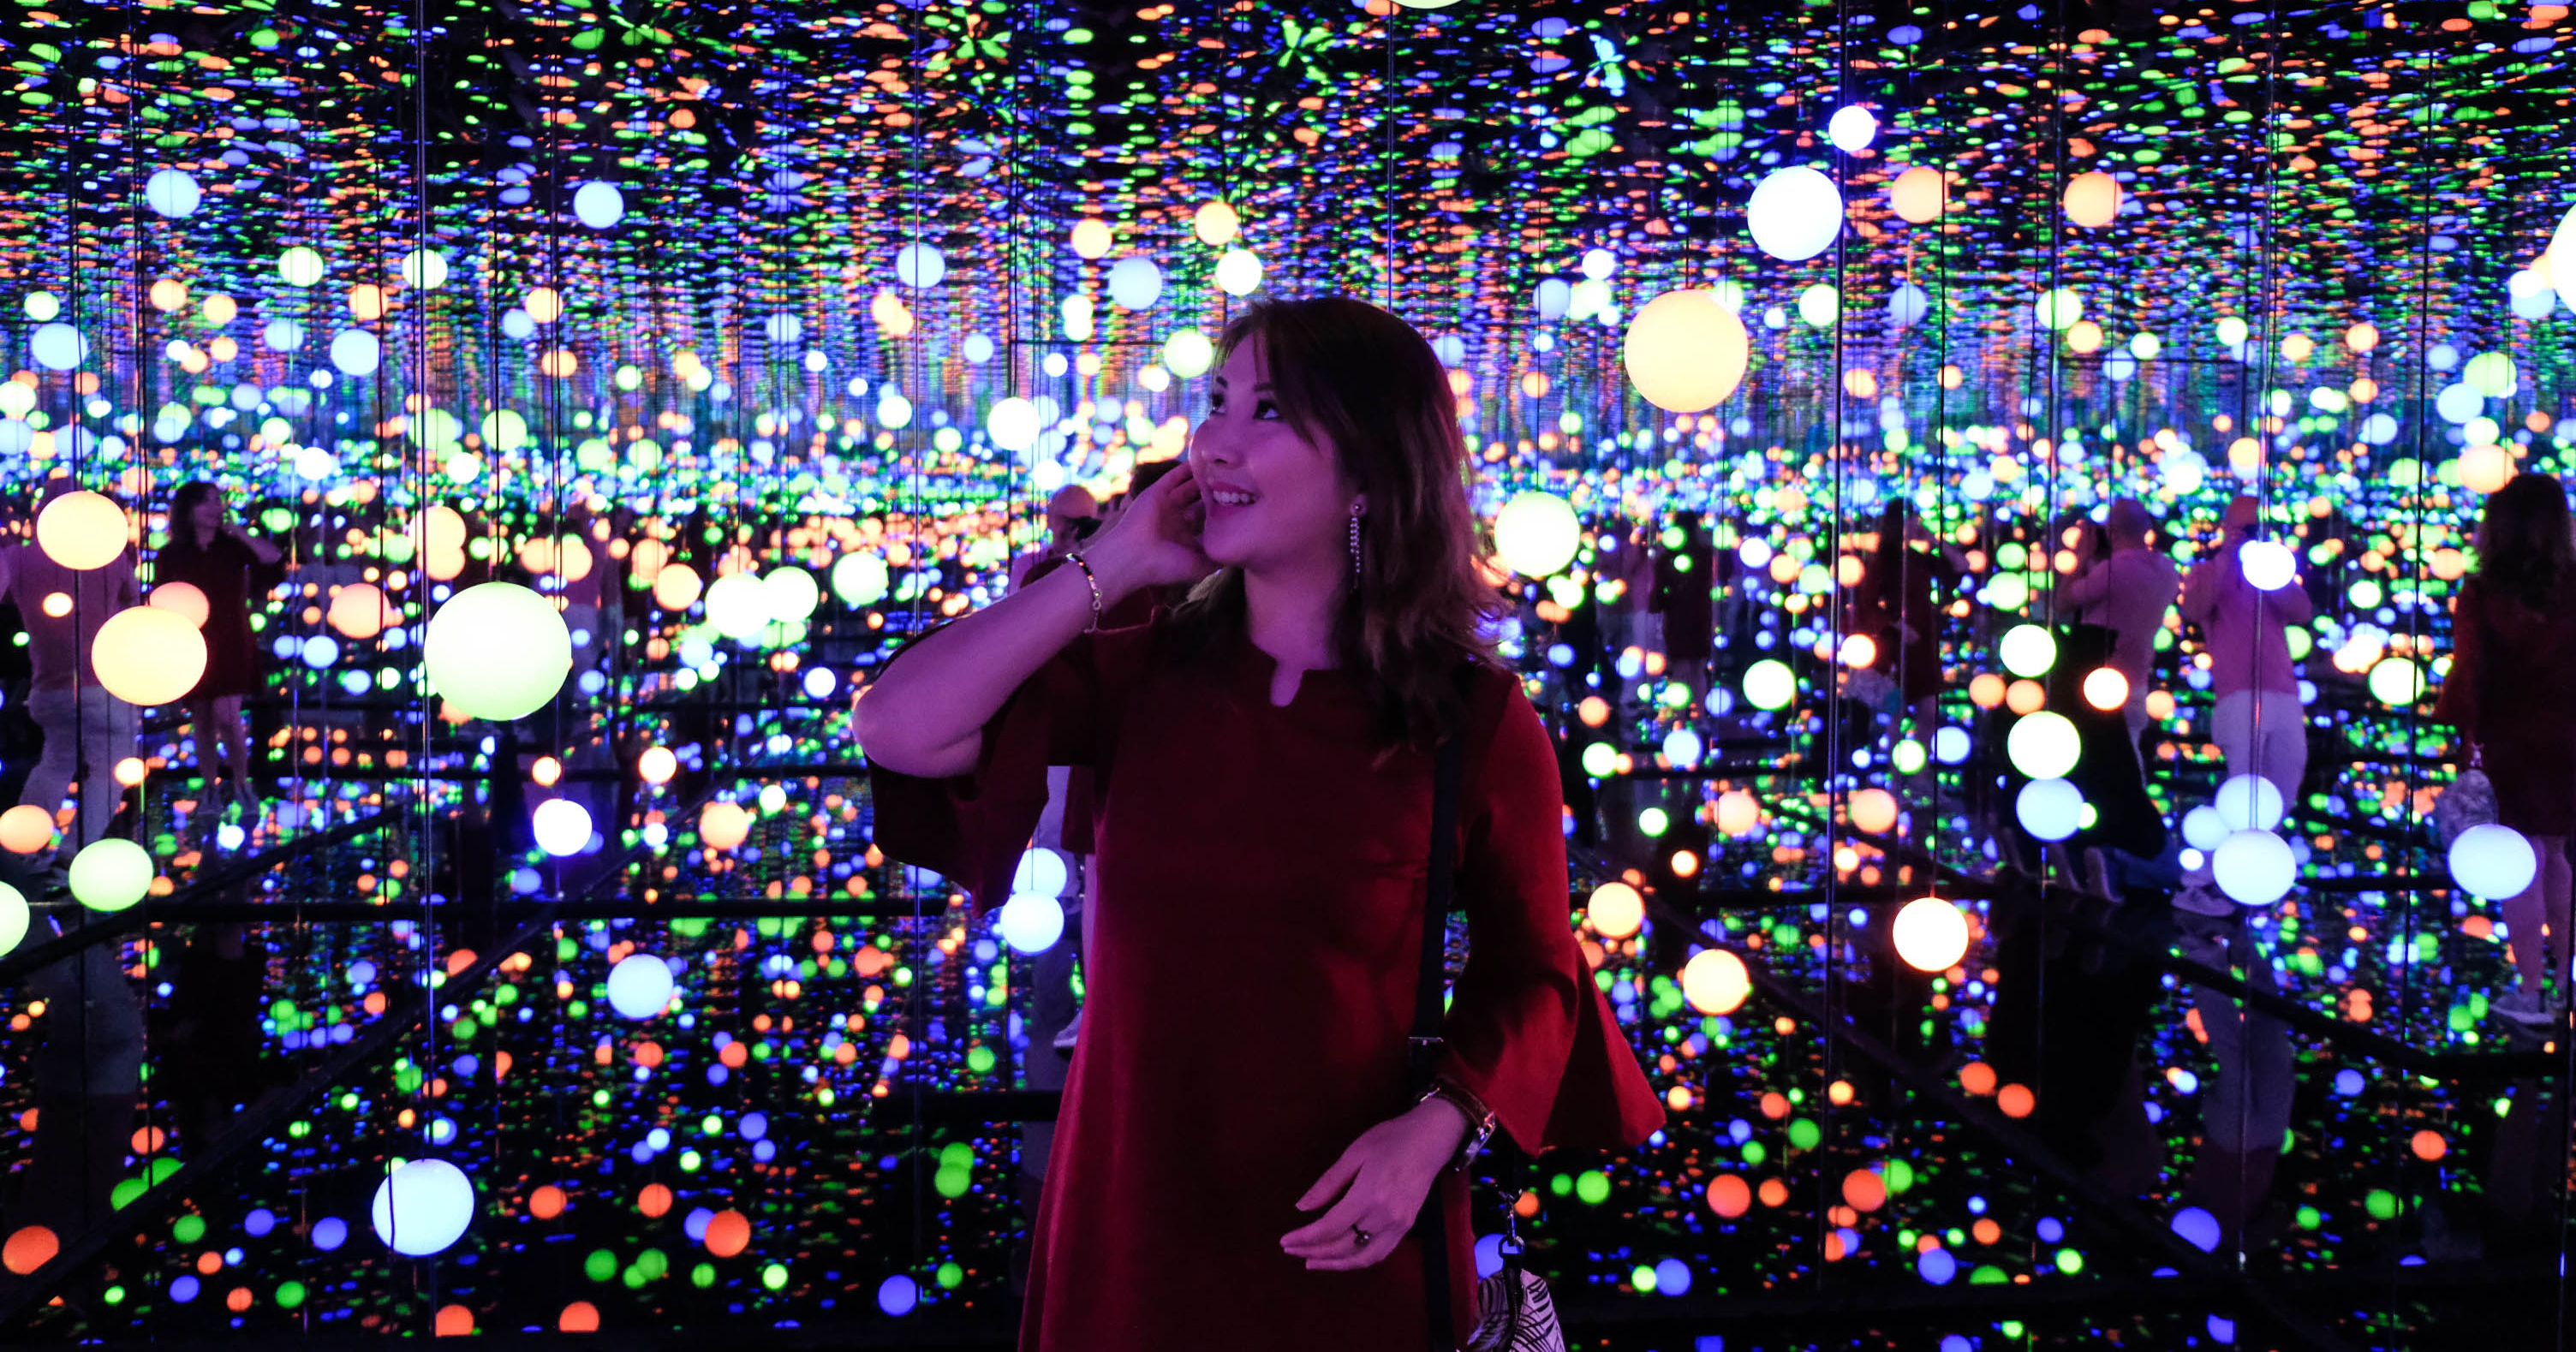 New Museum Macan Featuring Infinity Mirrored Room By